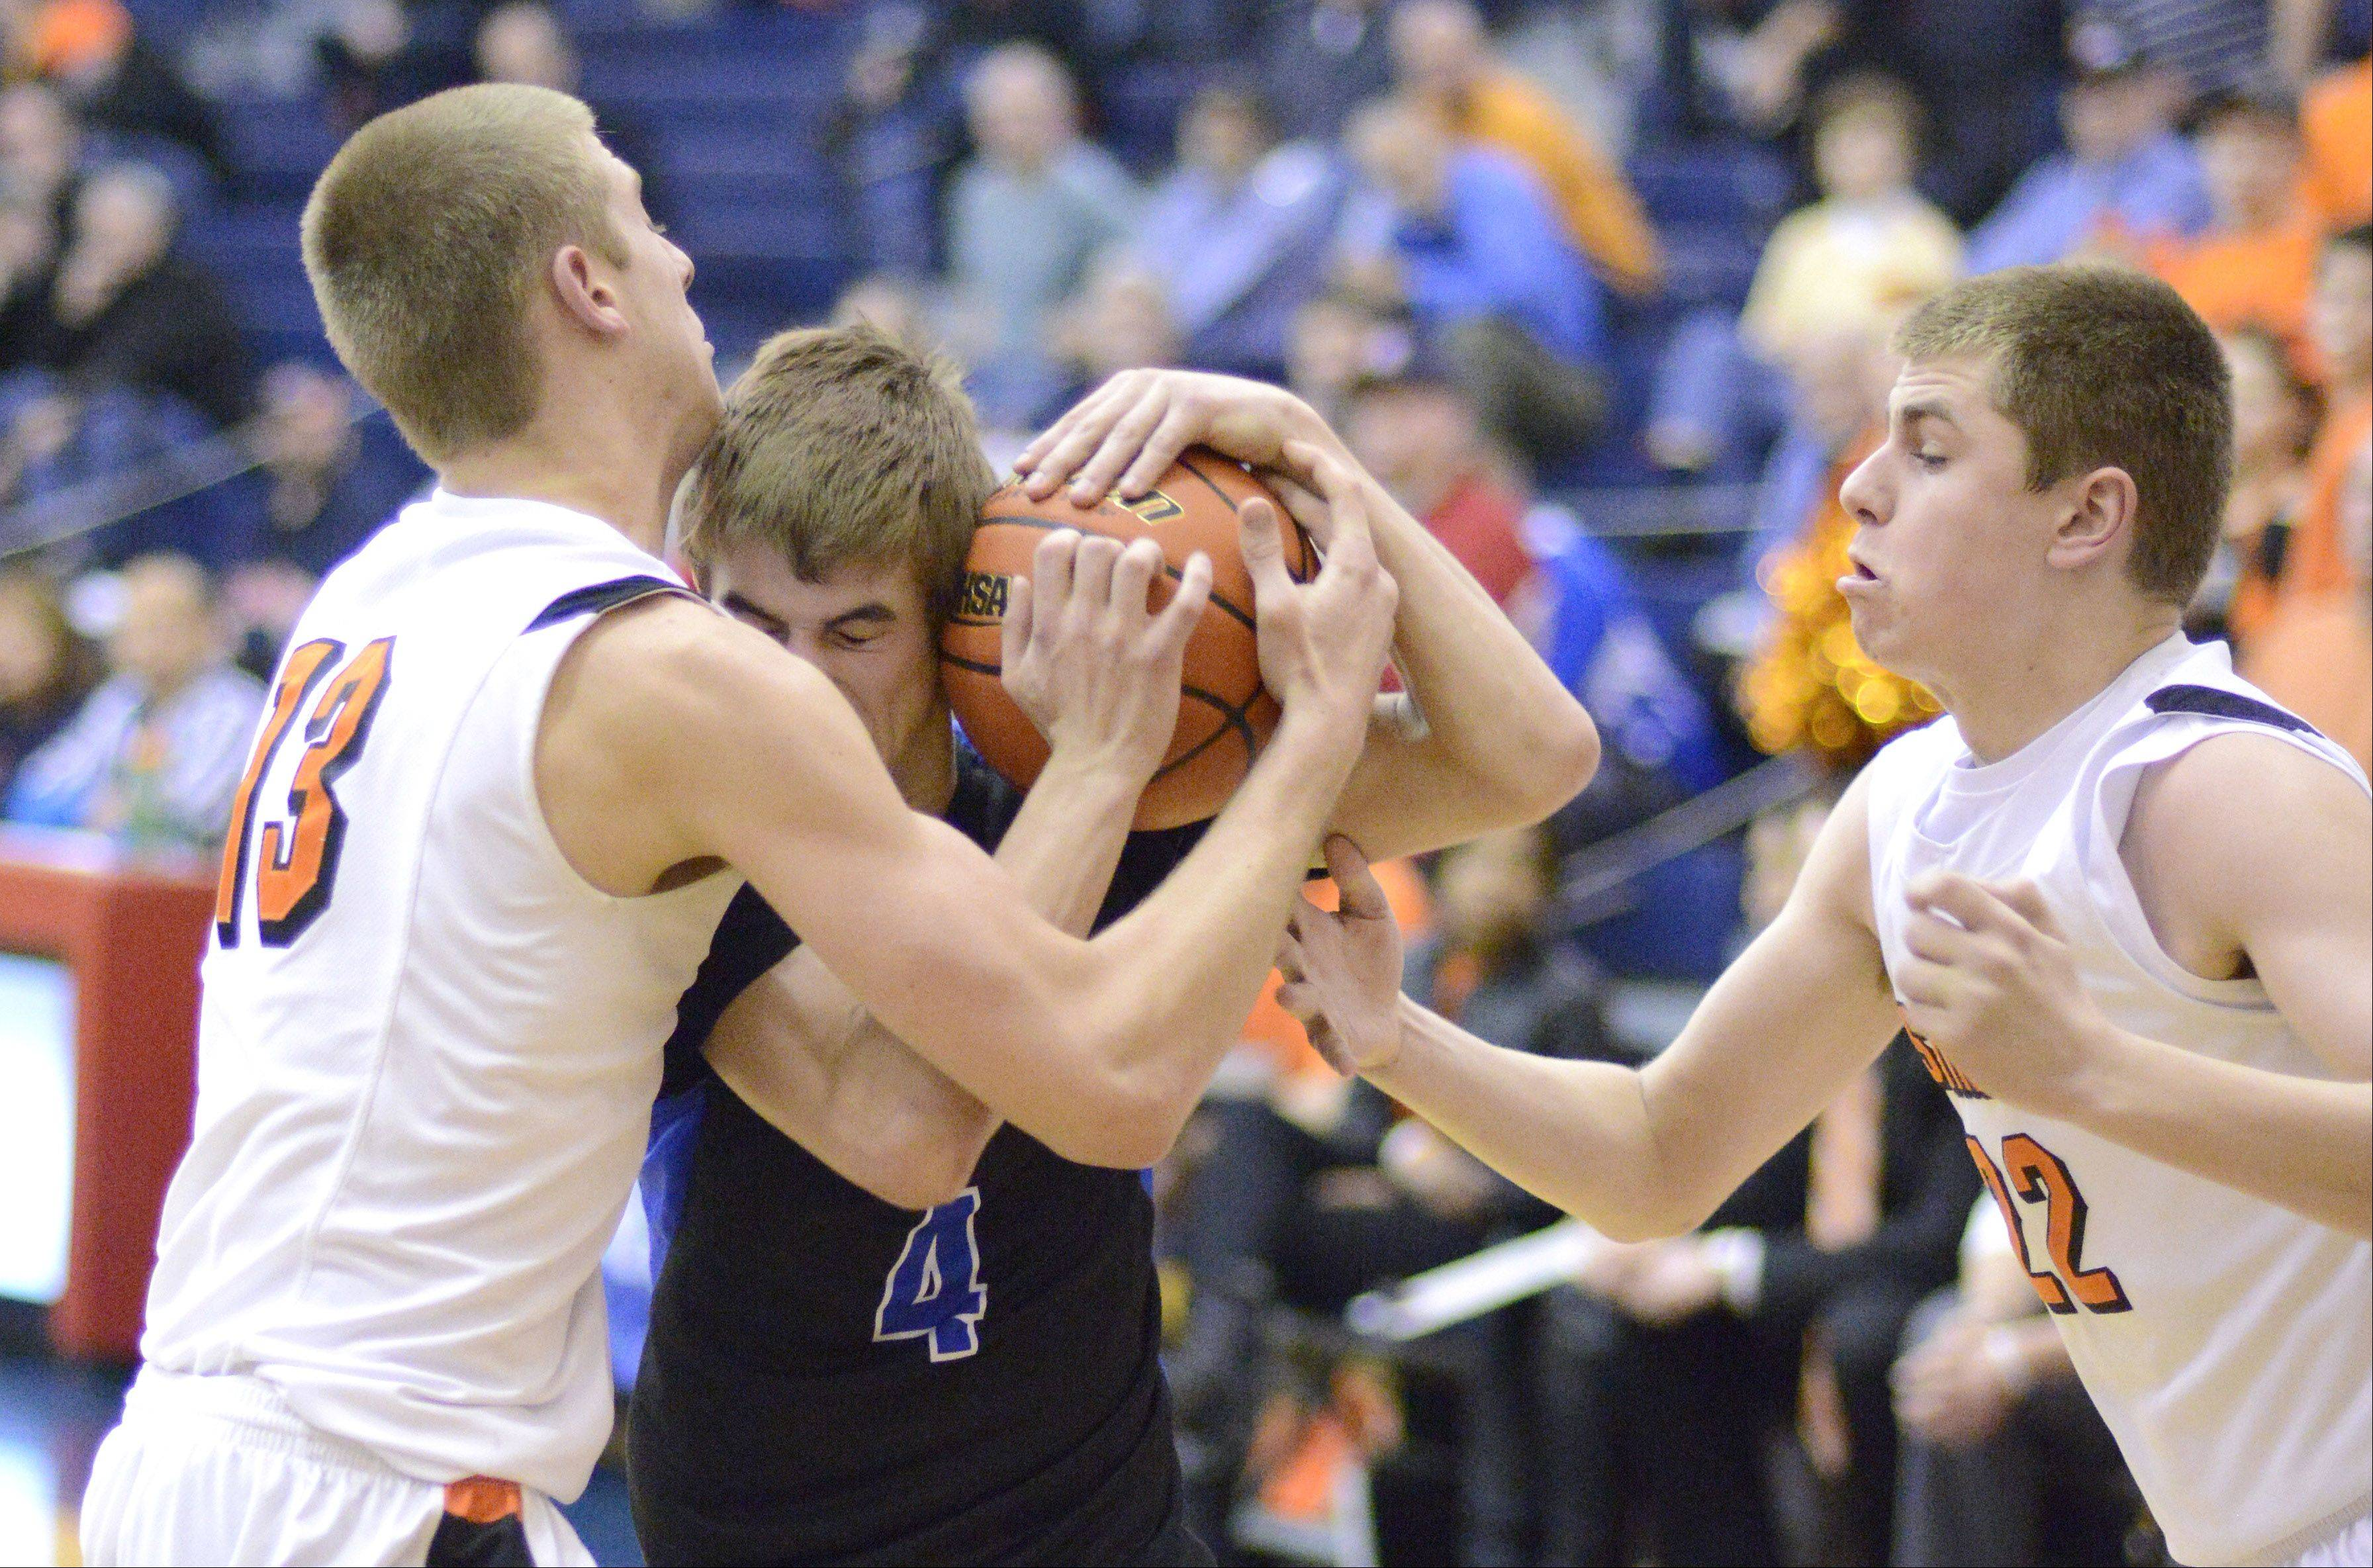 St. Charles North's Jake Ludwig wrestles with St. Charles East's Ben Skoog and James McQuillan until a foul is called on the Saints in the third quarter of the Class 4A regional on Wednesday, February 27.